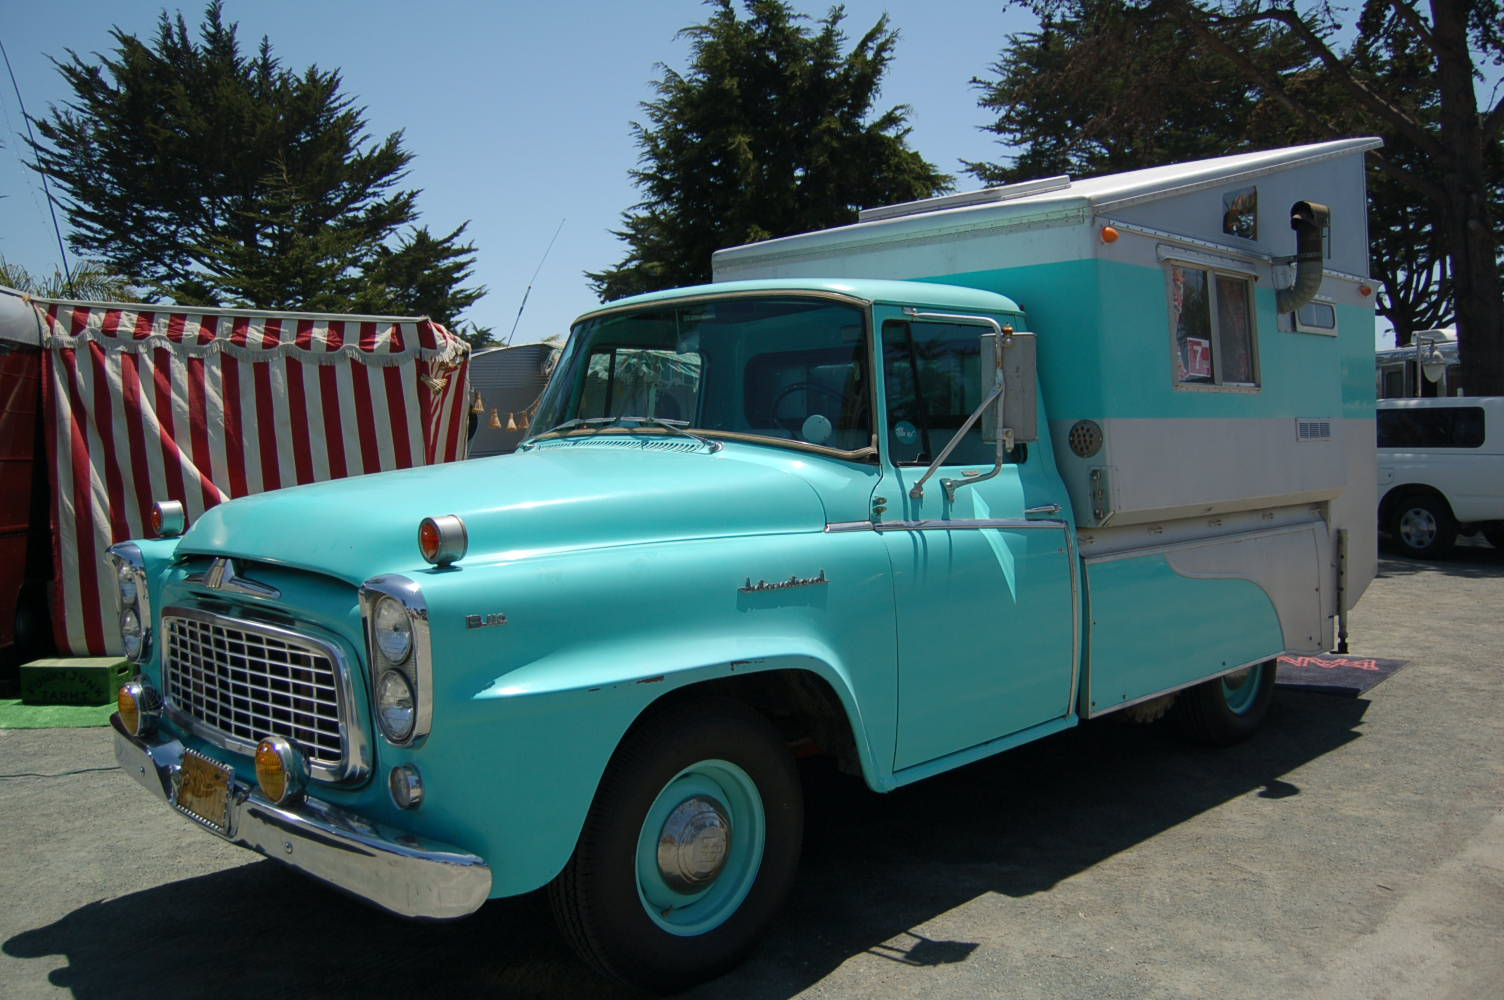 Very Cool Vintage Hinged Top Camper Mounted On A 1960 International Harvester Pickup Truck Based